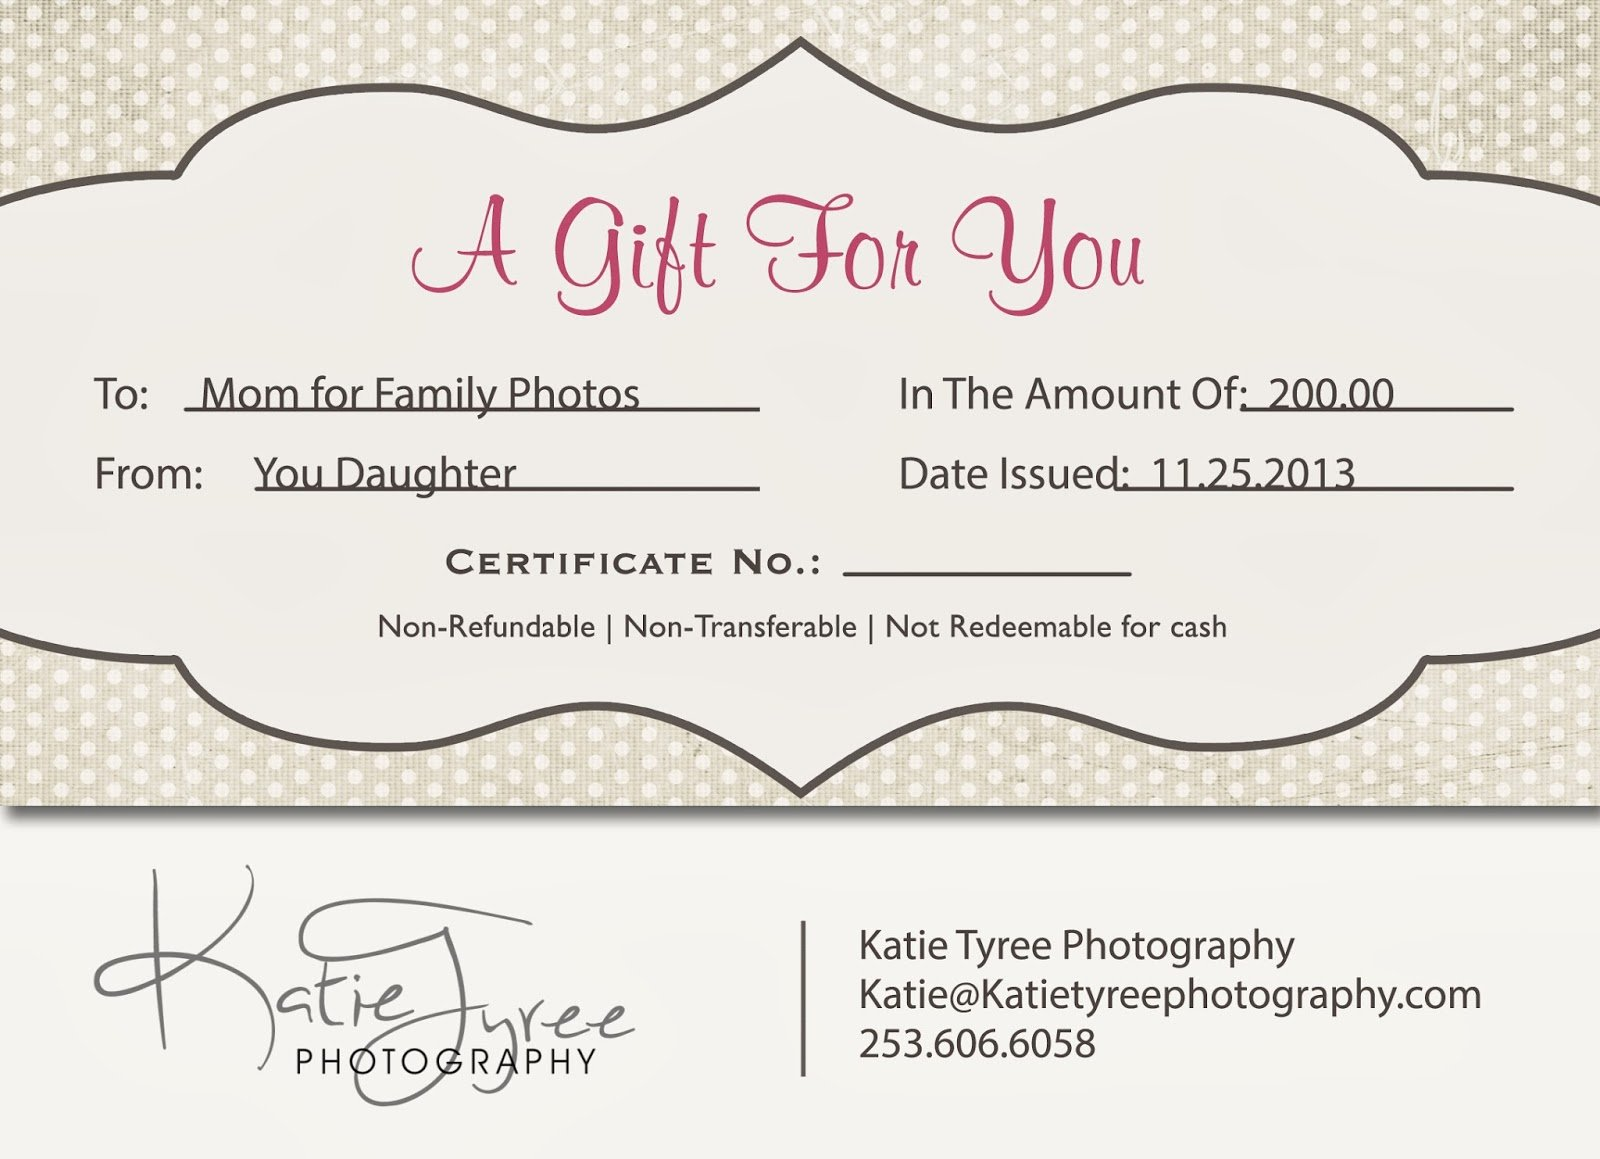 Free Photo Session Gift Certificate Template Awesome Katie Tyree Graphy Best Christmas Present 2013